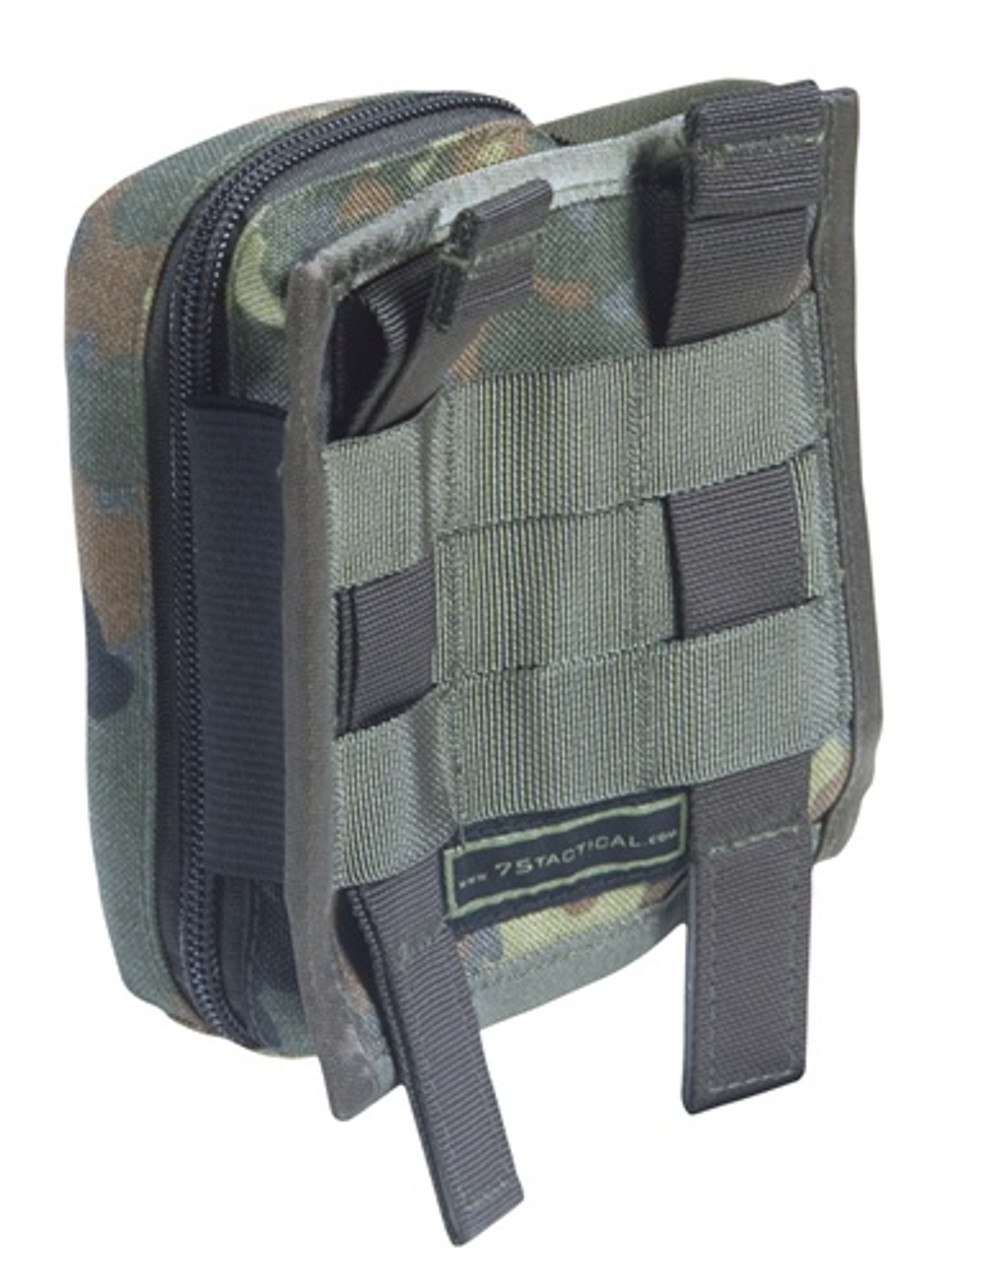 75Tactical Personal-Pack TecSys AX6 - Flecktarn from Hessen Antique